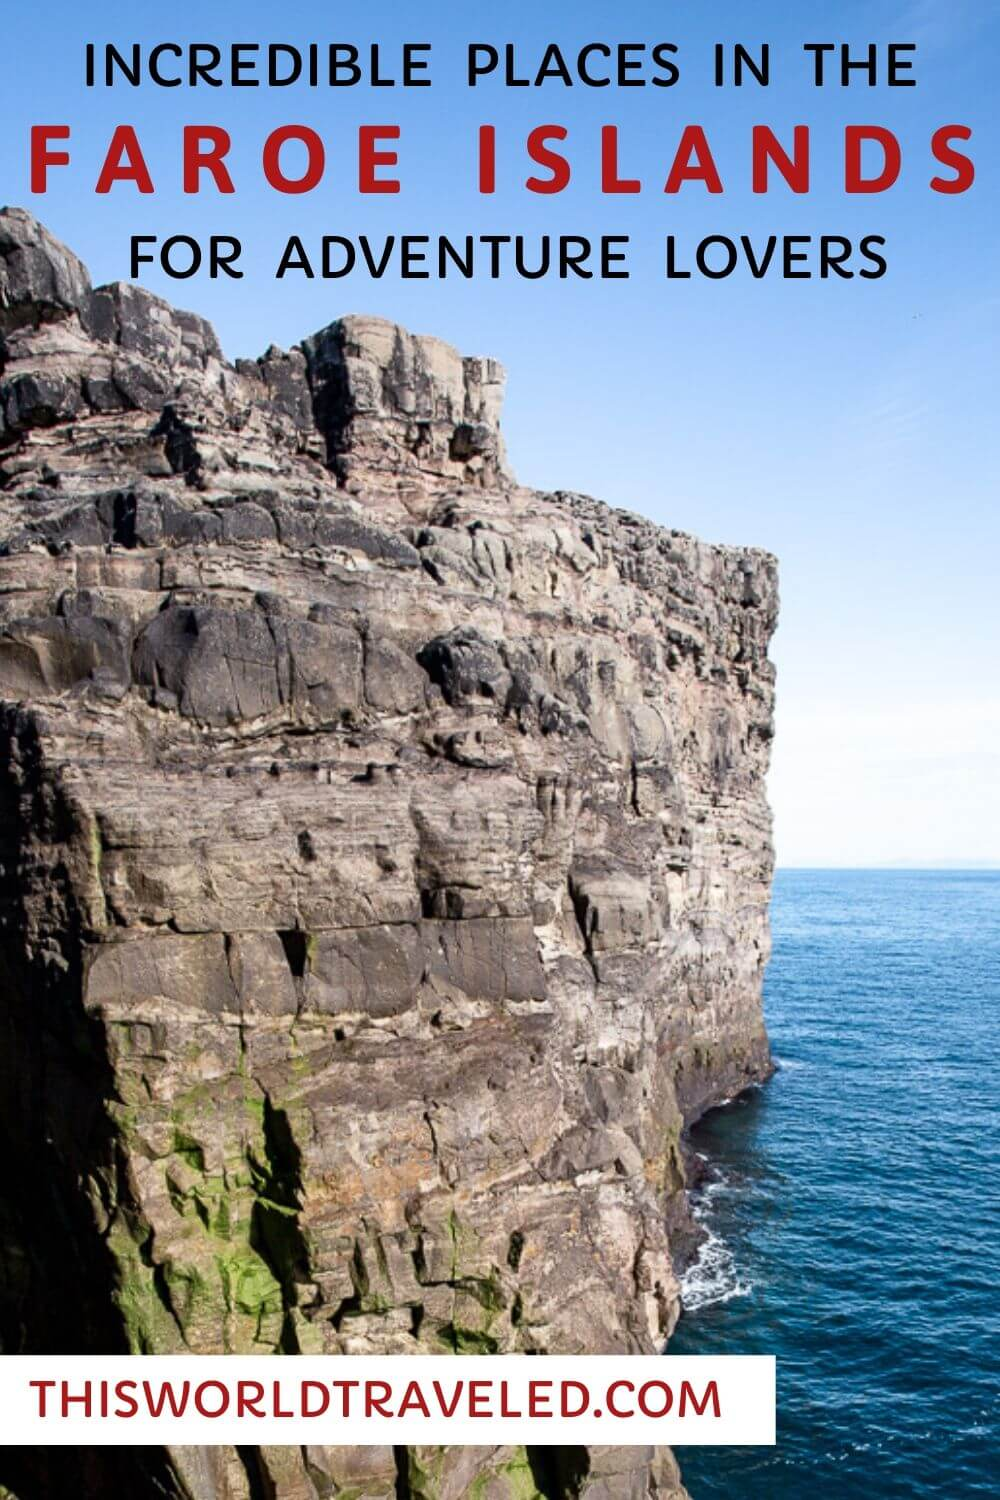 Incredible Places in the Faroe Islands for Adventure Lovers